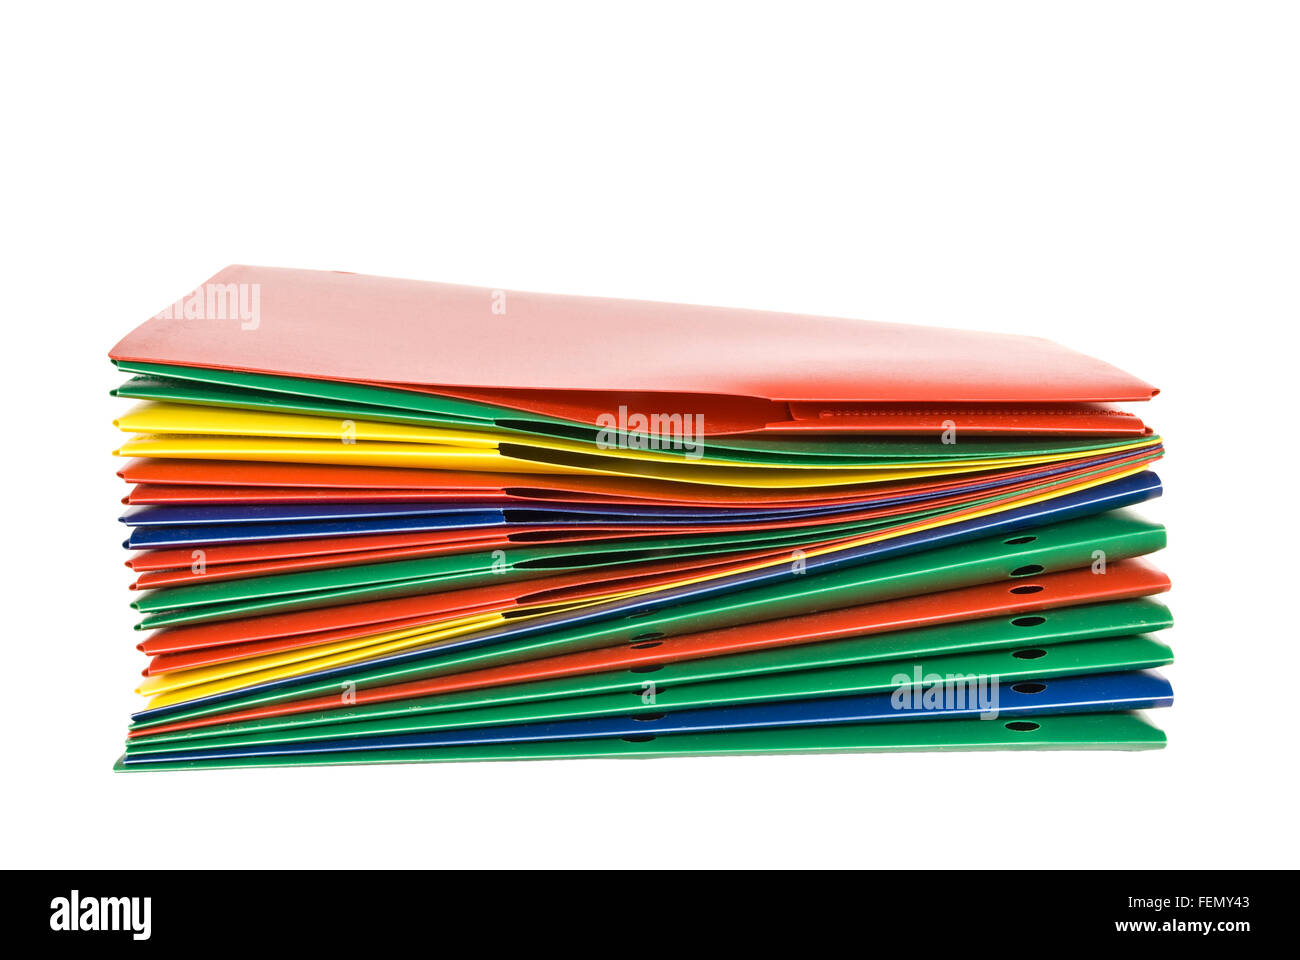 Stack of Plastic Report Folders - Stock Image